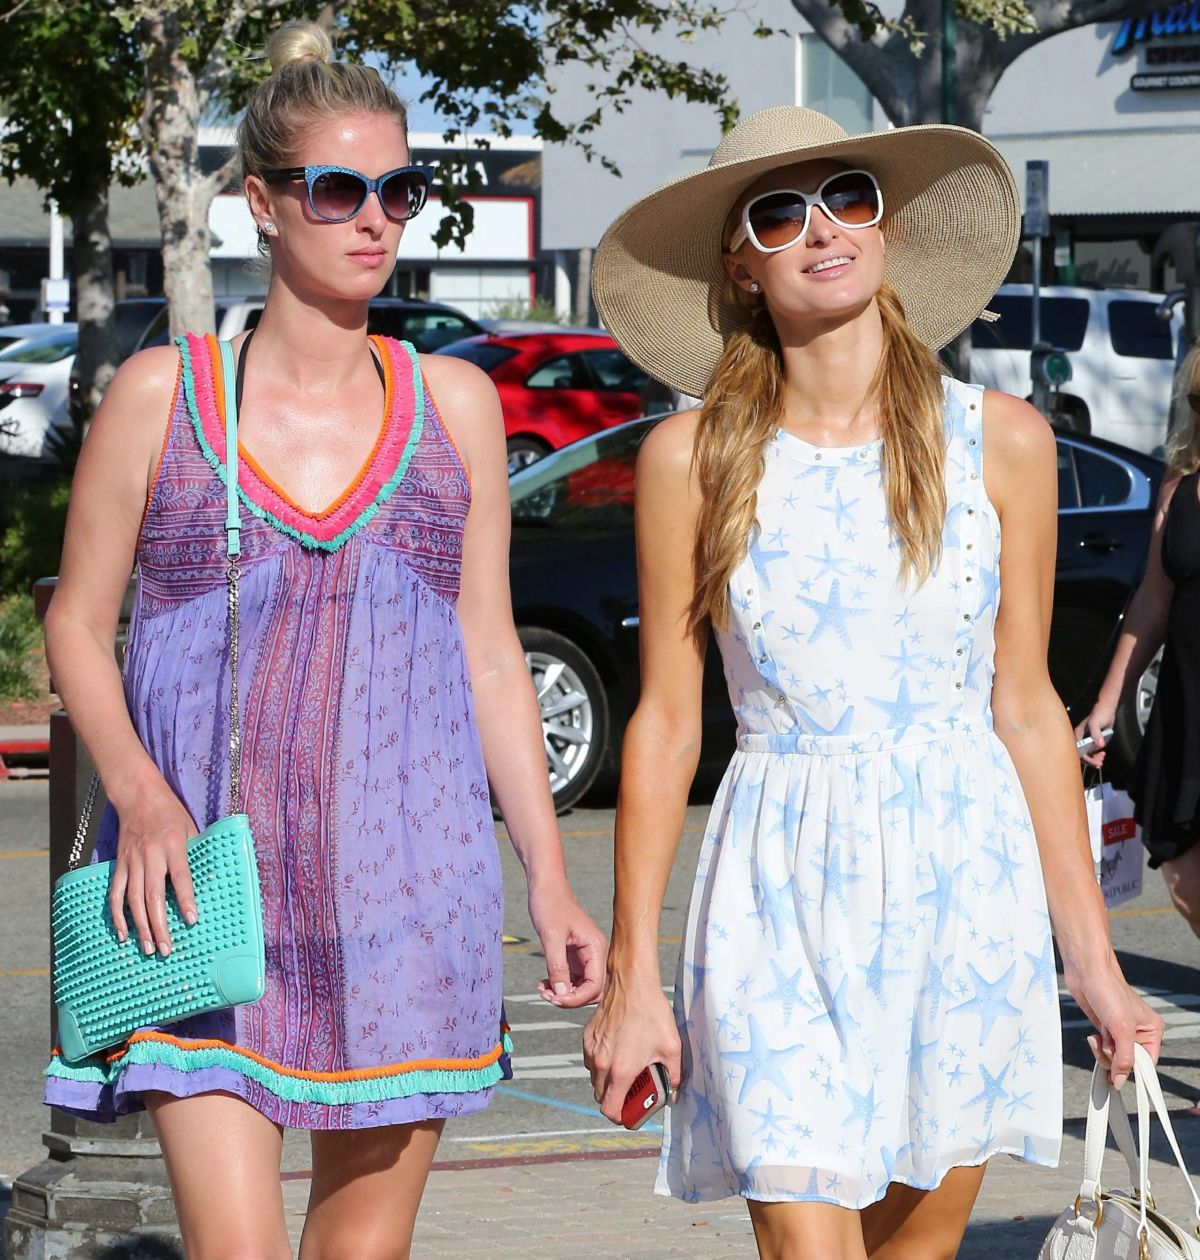 PARIS and NICKY HILTON Out Shopping in Malibu